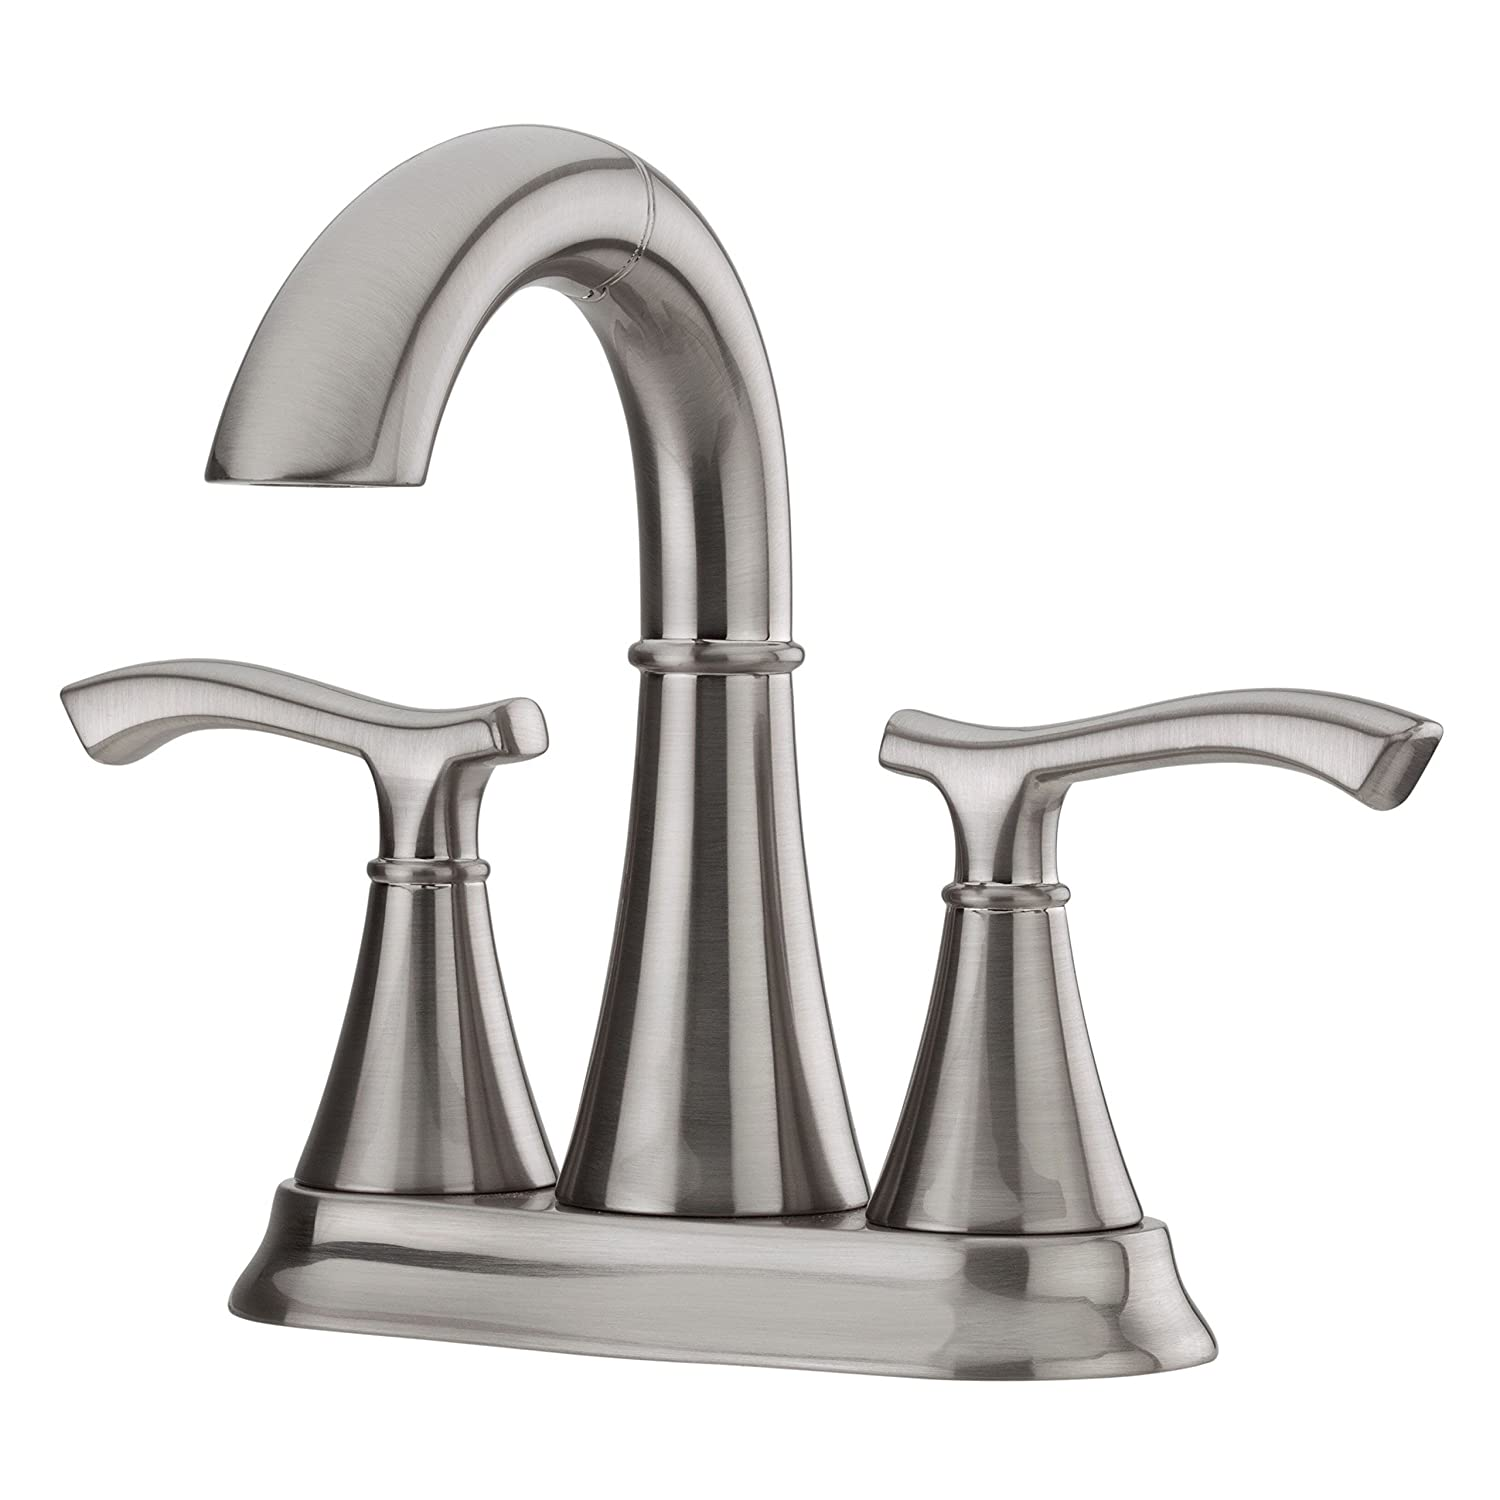 "Pfister LF-548-IDKK Ideal 2-Handle 4"" Centerset Bathroom Faucet in Brushed Nickel, 1.2gpm low-cost"